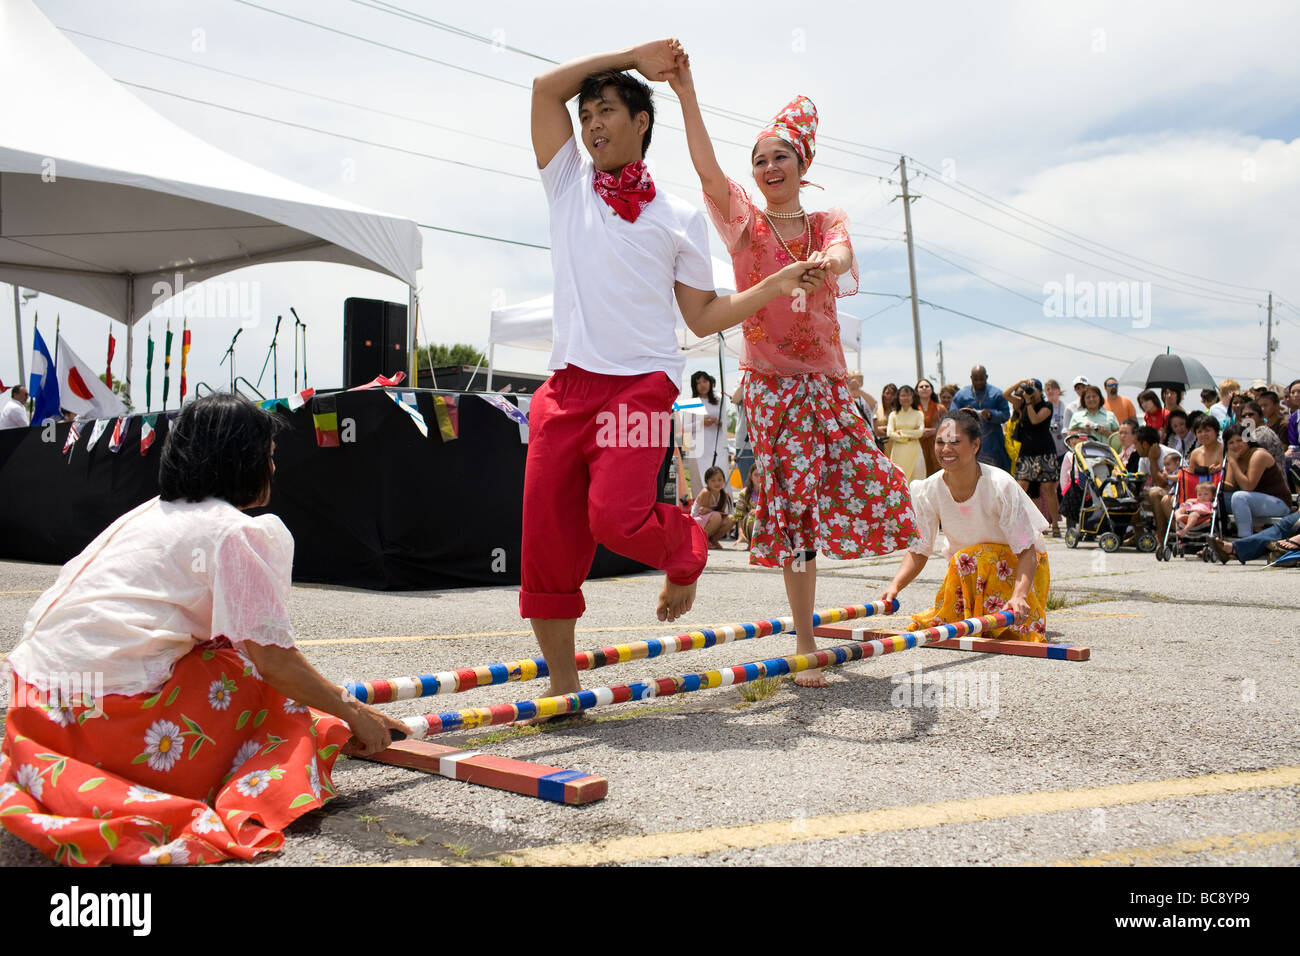 Filipinos perform the traditional Tinikling dance before an audience at a festival in Rogers, ArkANSAS, U.S.A . - Stock Image